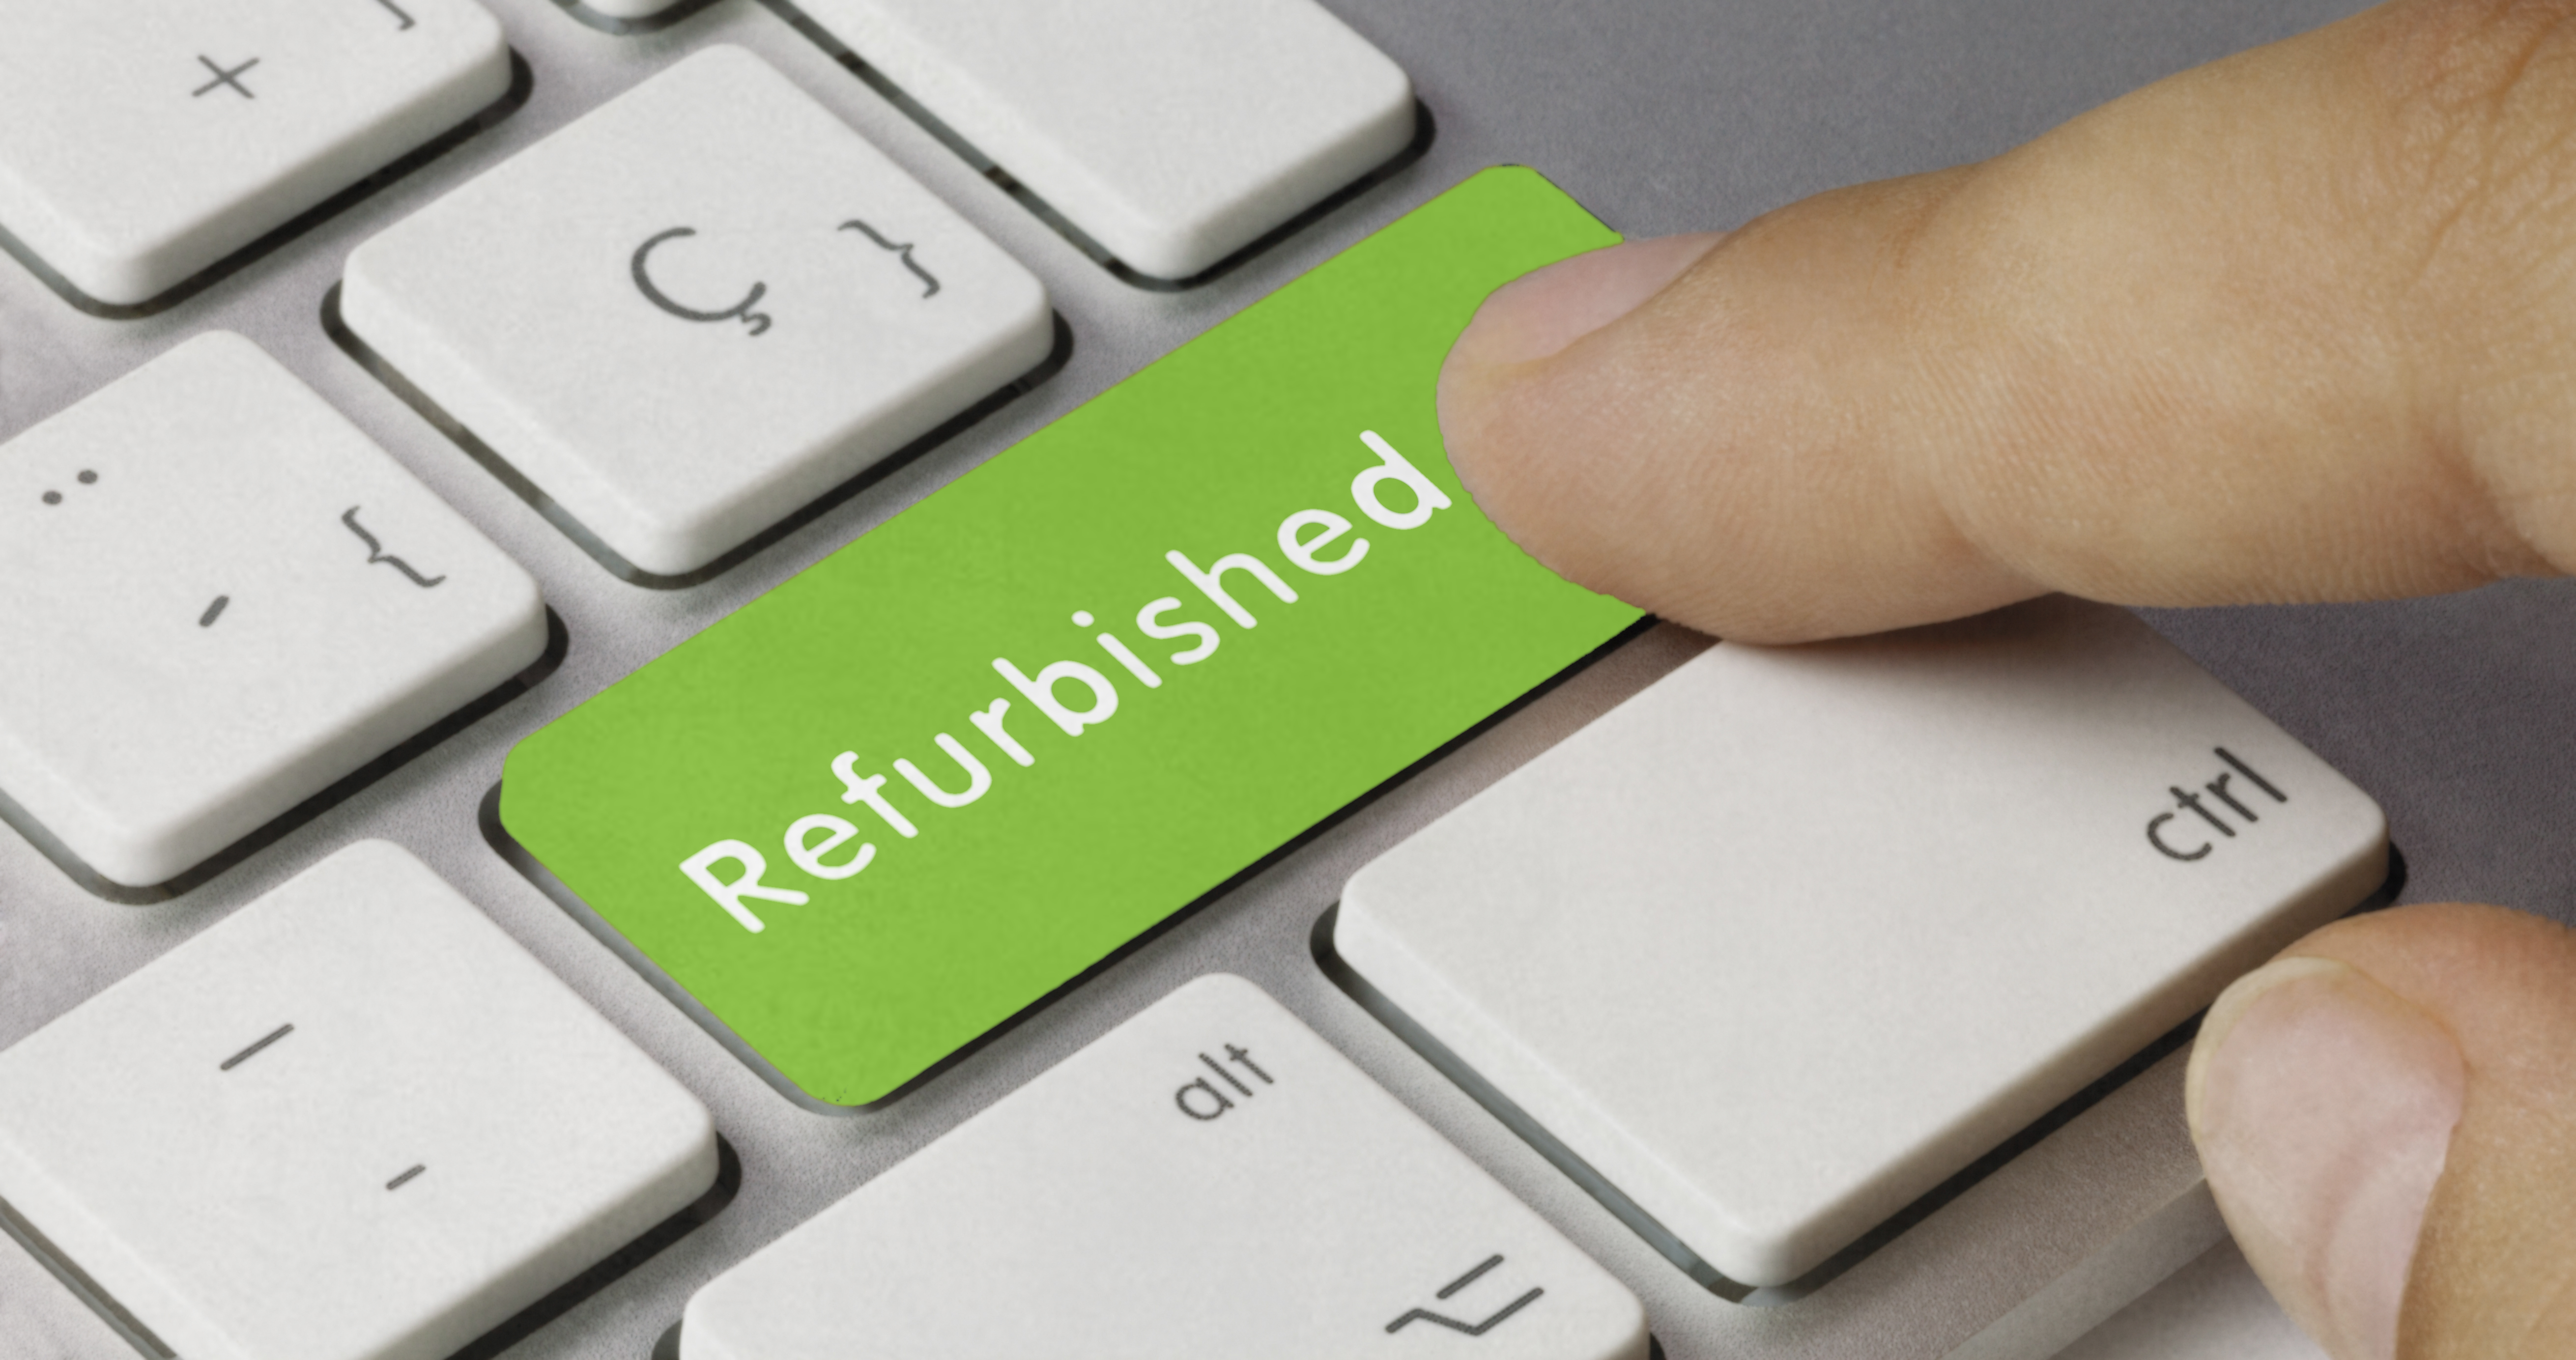 Refurbished: To Buy or Not To Buy